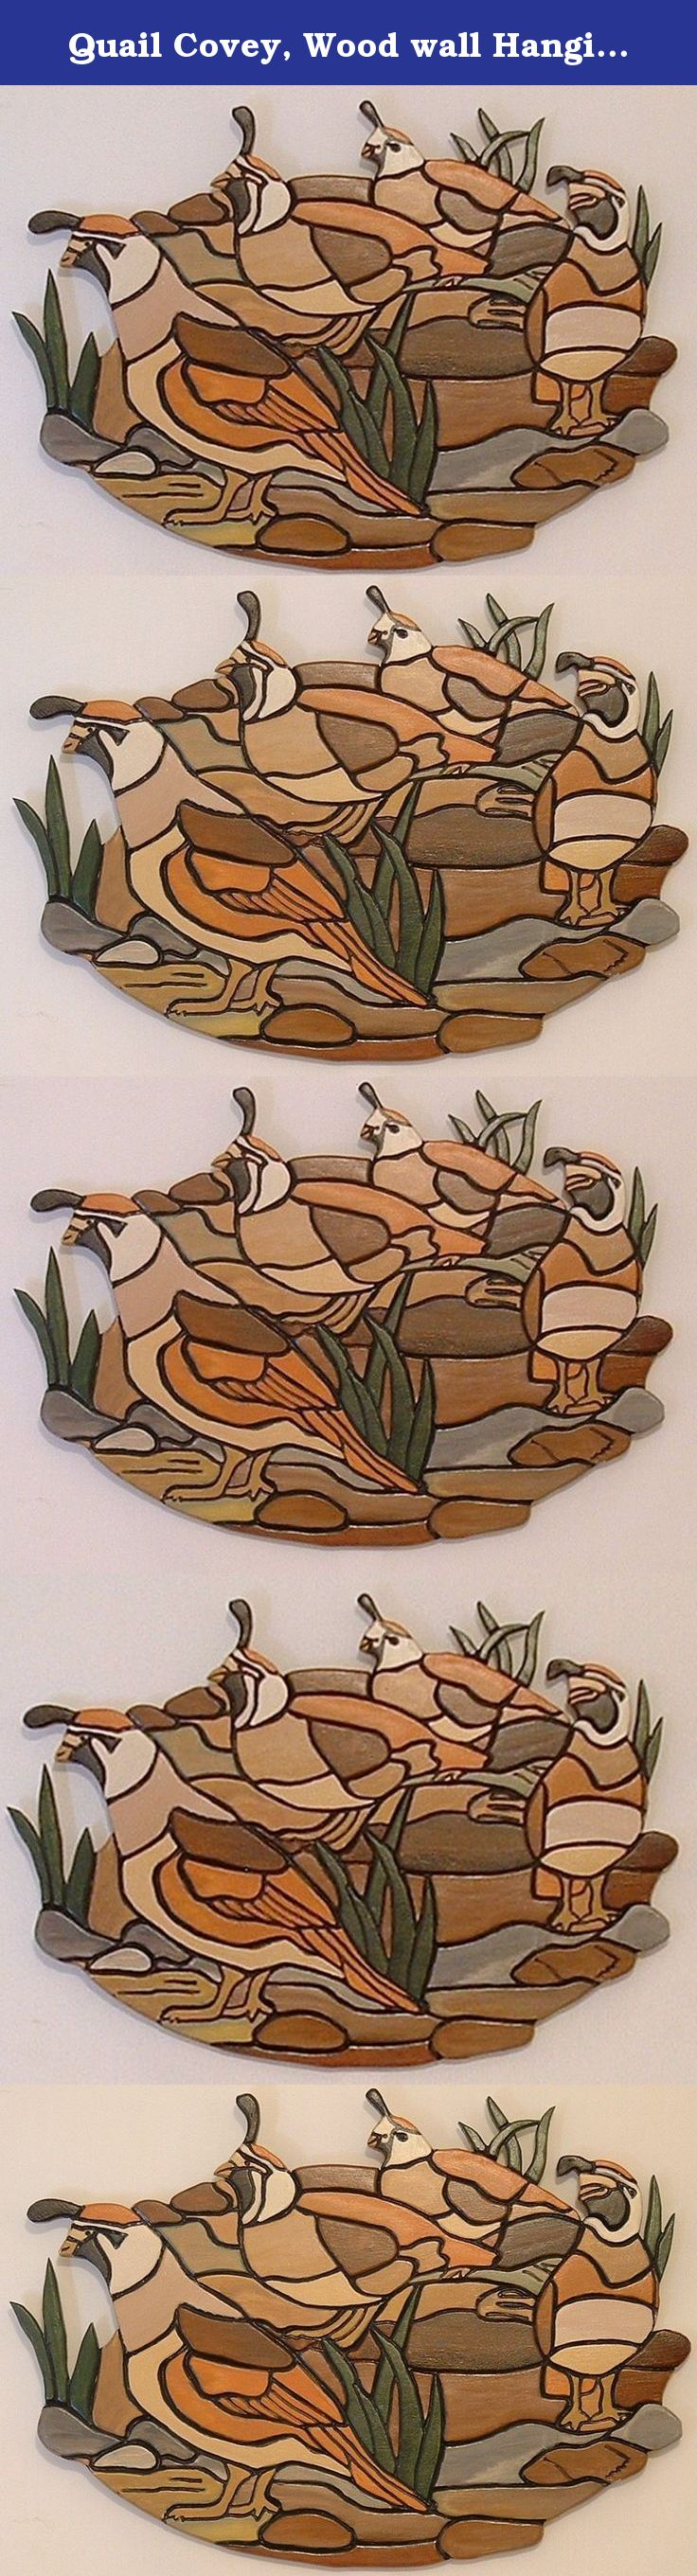 Quail covey wood wall hanging wall decor for office or man cave